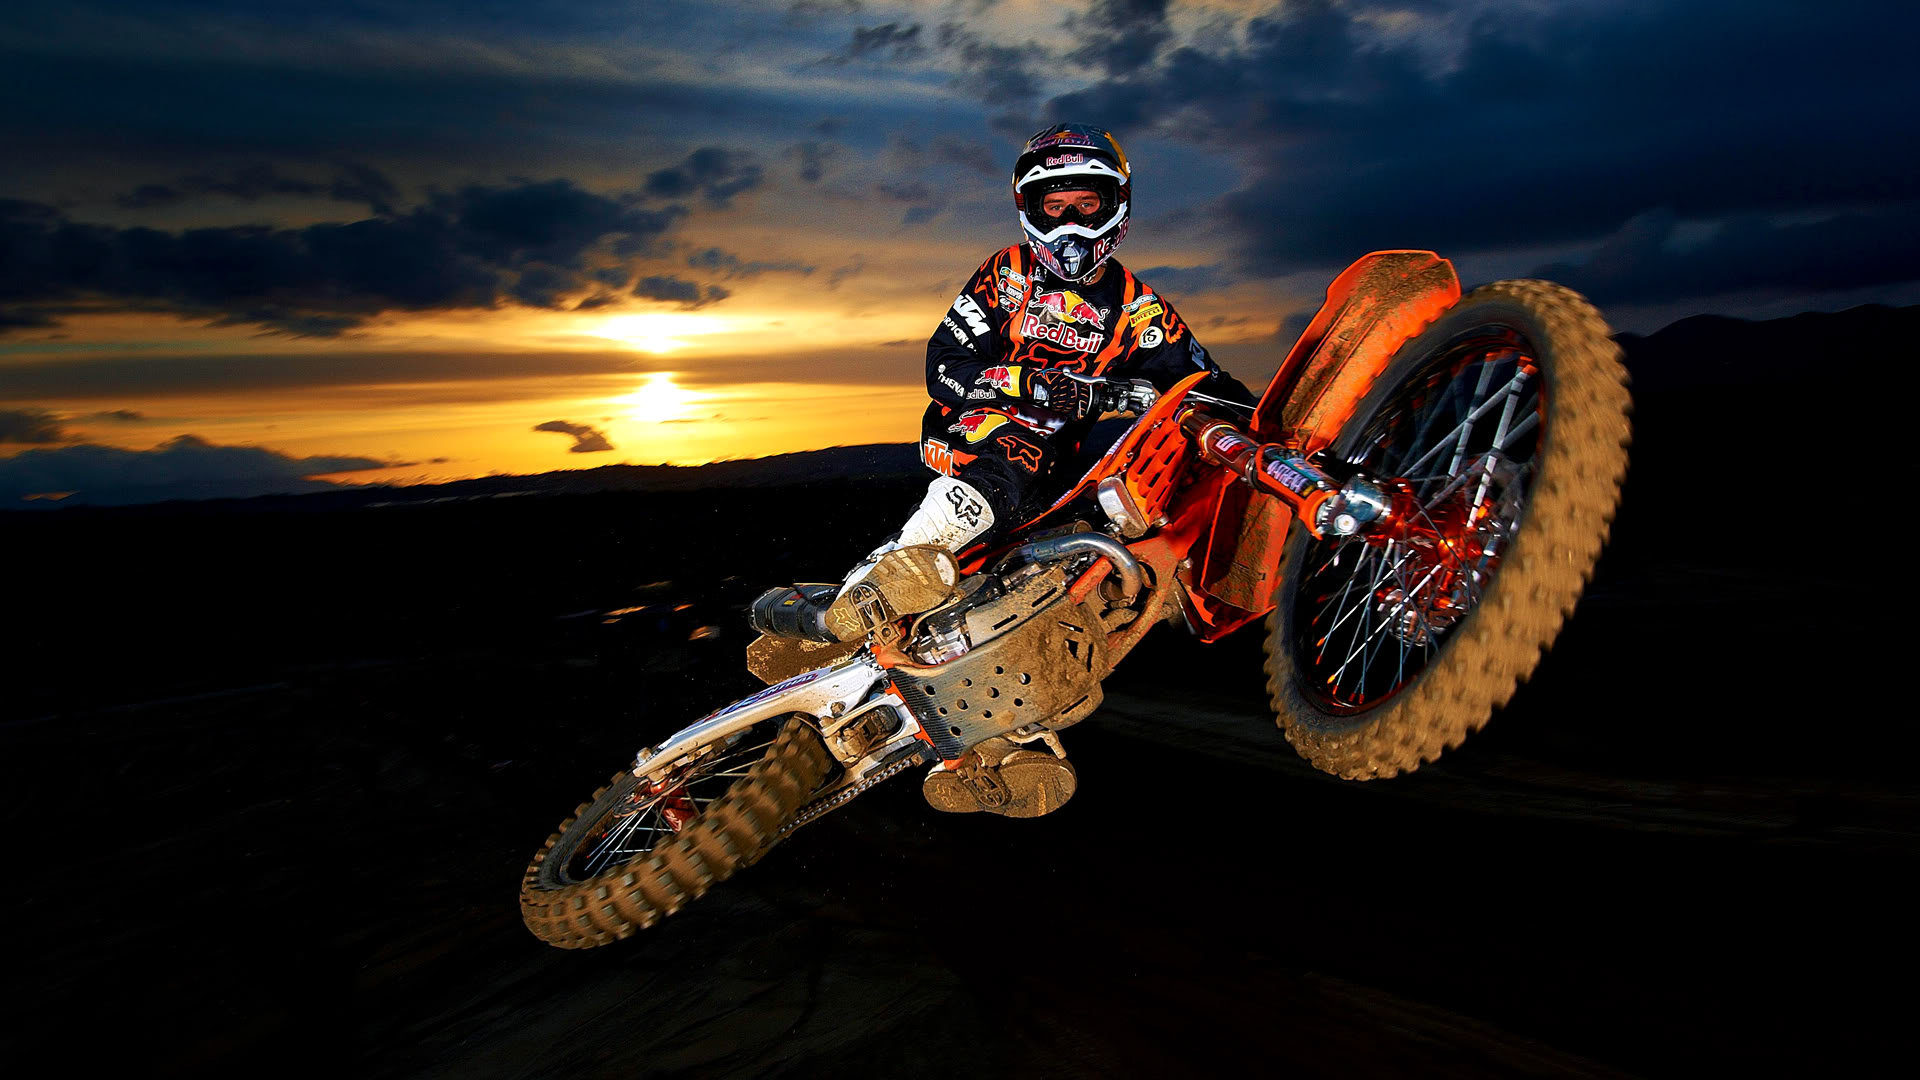 Best Action KTM Motocross Wallpaper Background 7959 Wallpaper High 1920x1080